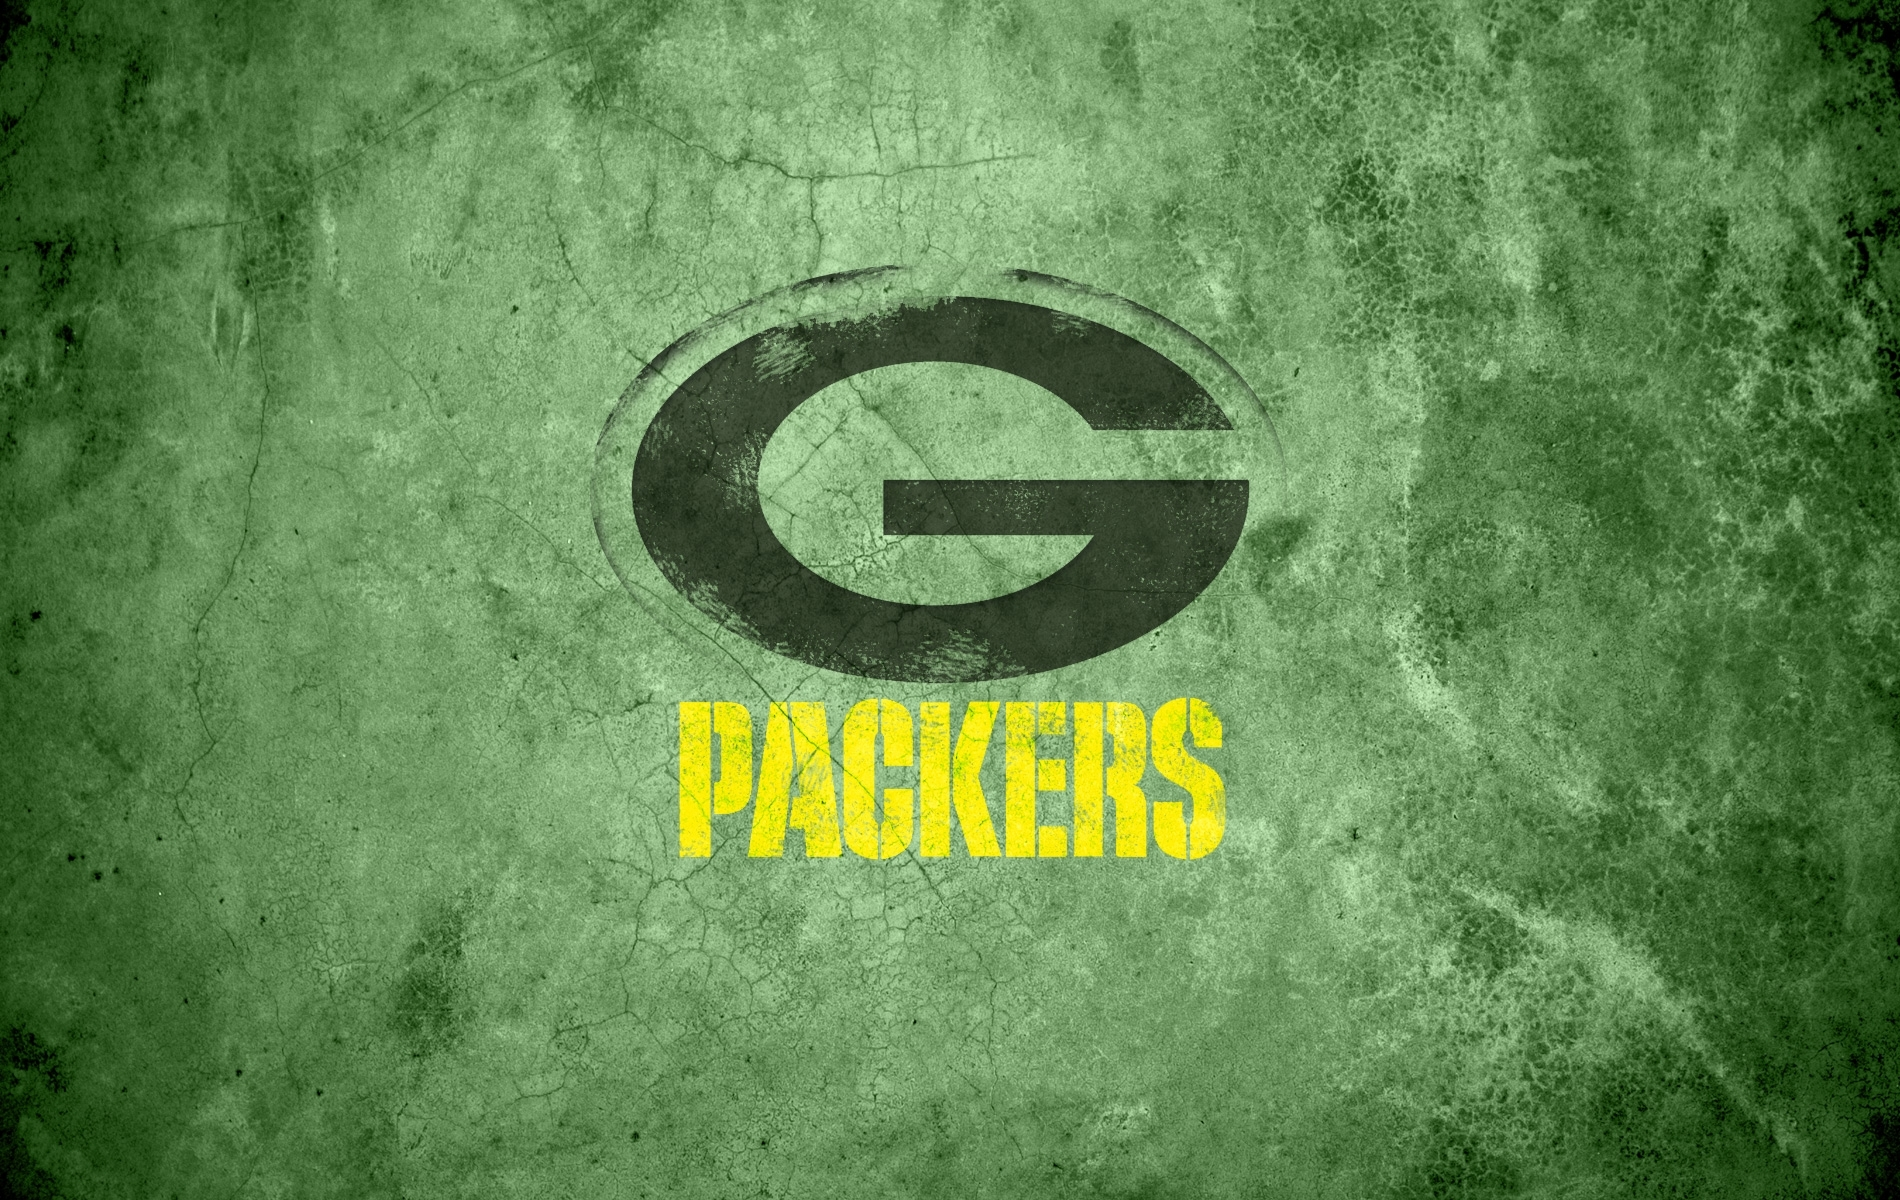 green bay packers images green bay packers wallpaper hd wallpaper